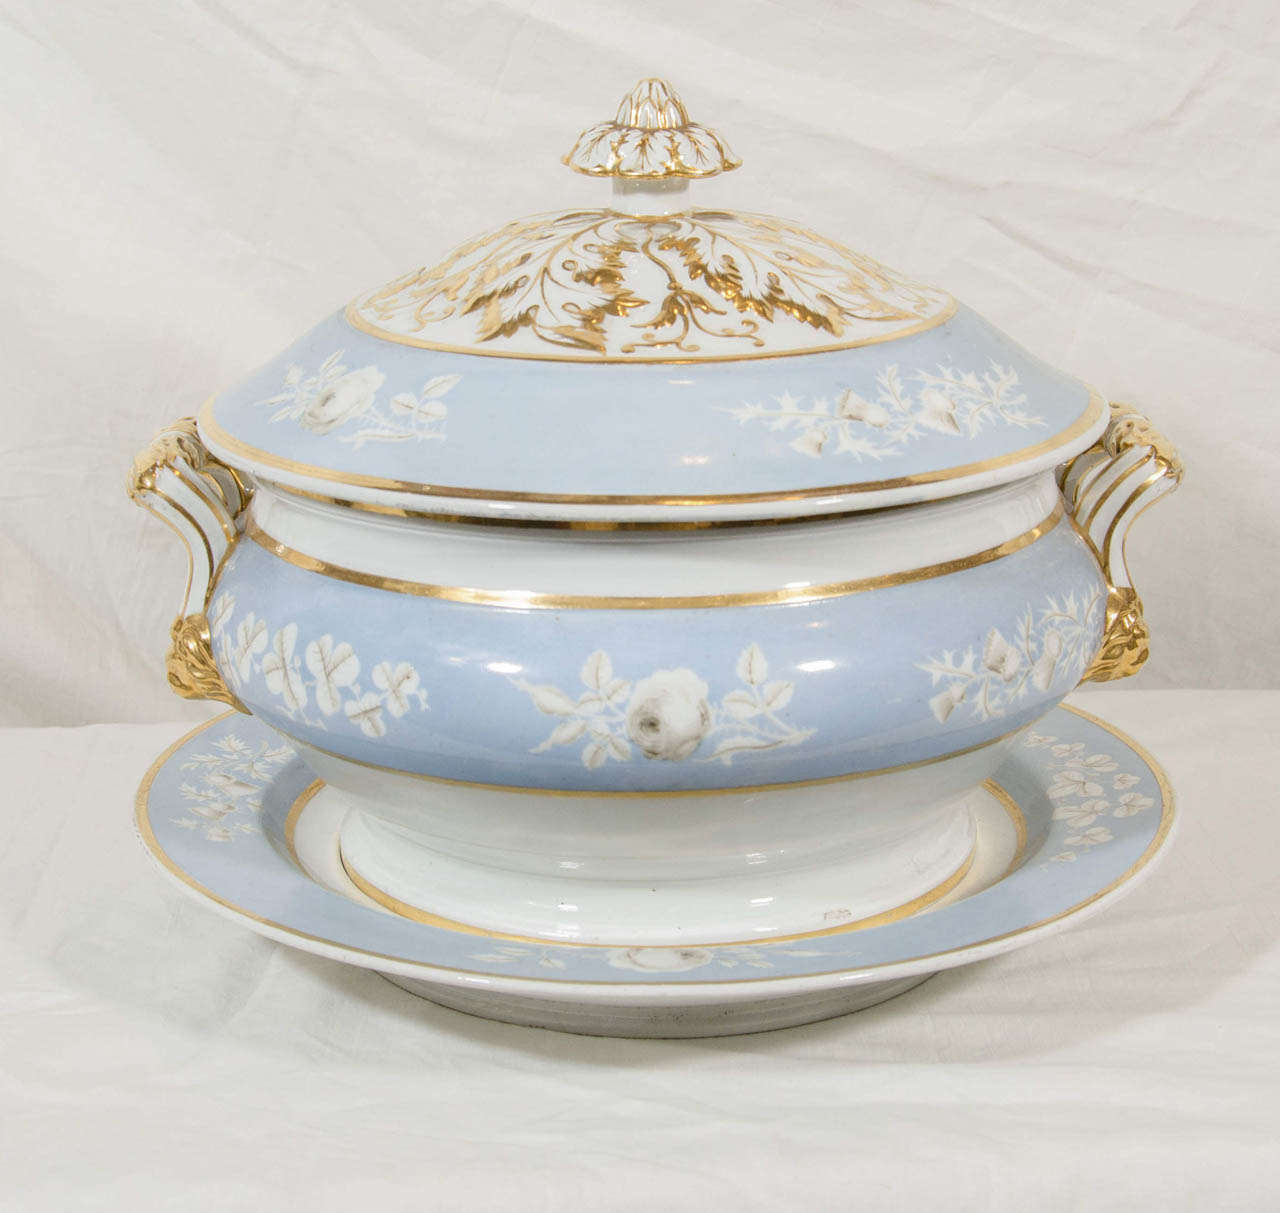 A standout Worcester soup tureen and stand painted light blue with white roses and decorated on the cover with outstanding gilding which also decorates the finial and the handles. The tureen was made in England circa 1820 by Chamberlains